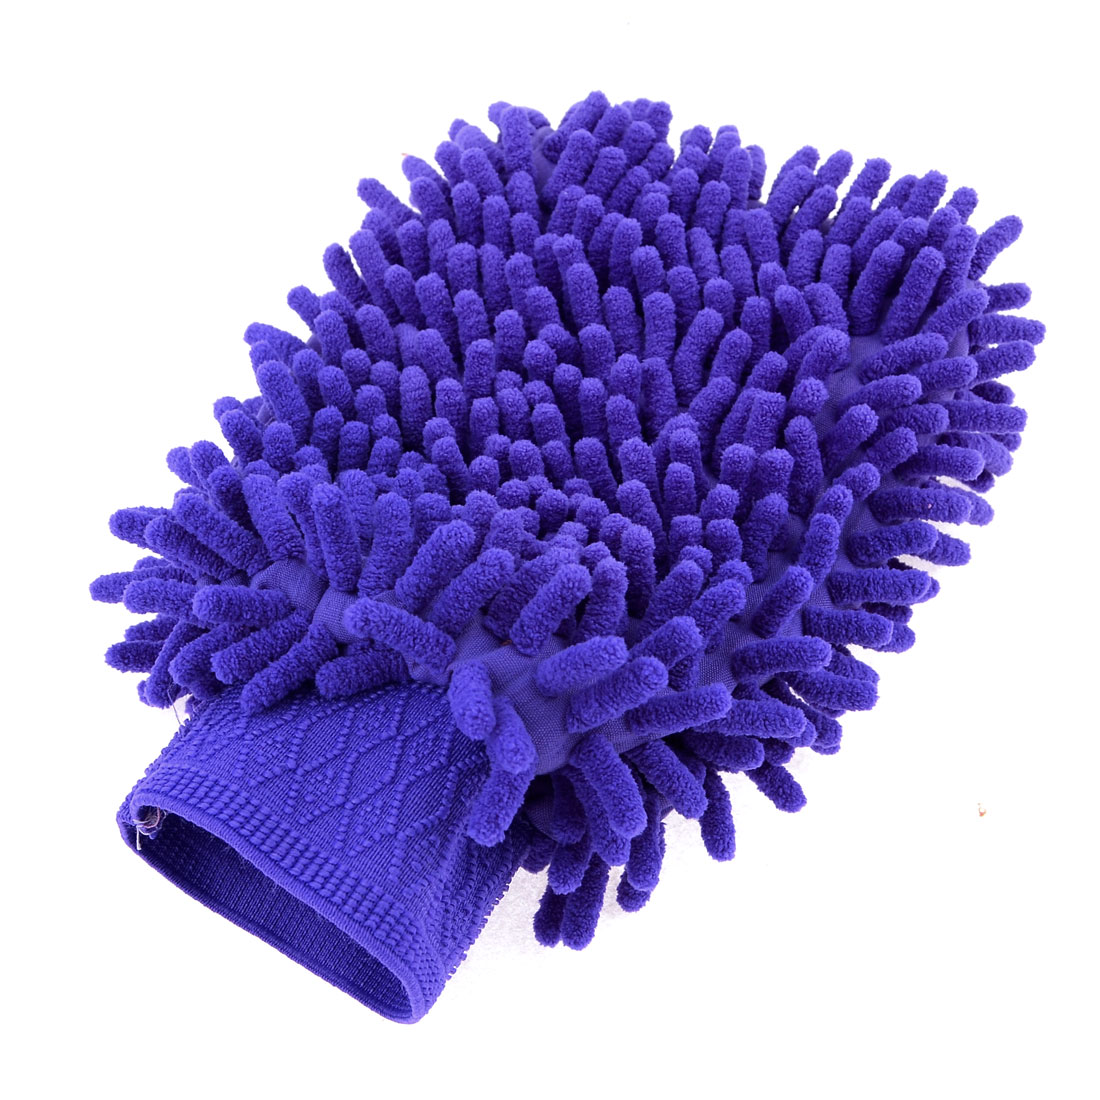 Household Stretch Chenille Furniture Window Scrubing Gloves Mittens Royal Blue